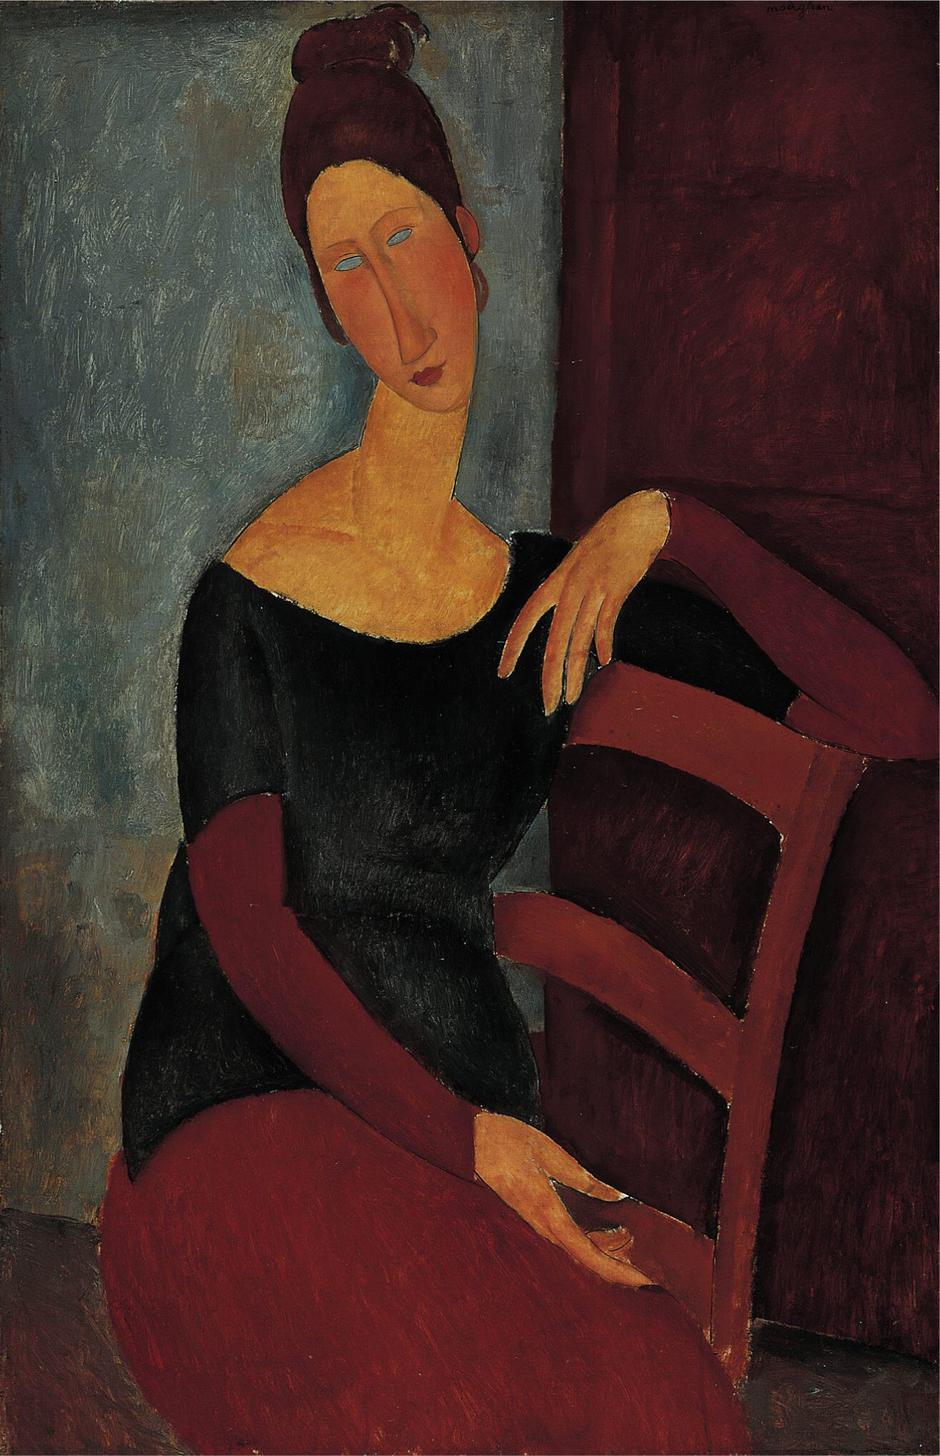 modigliani | Author: Amedeo Modigliani